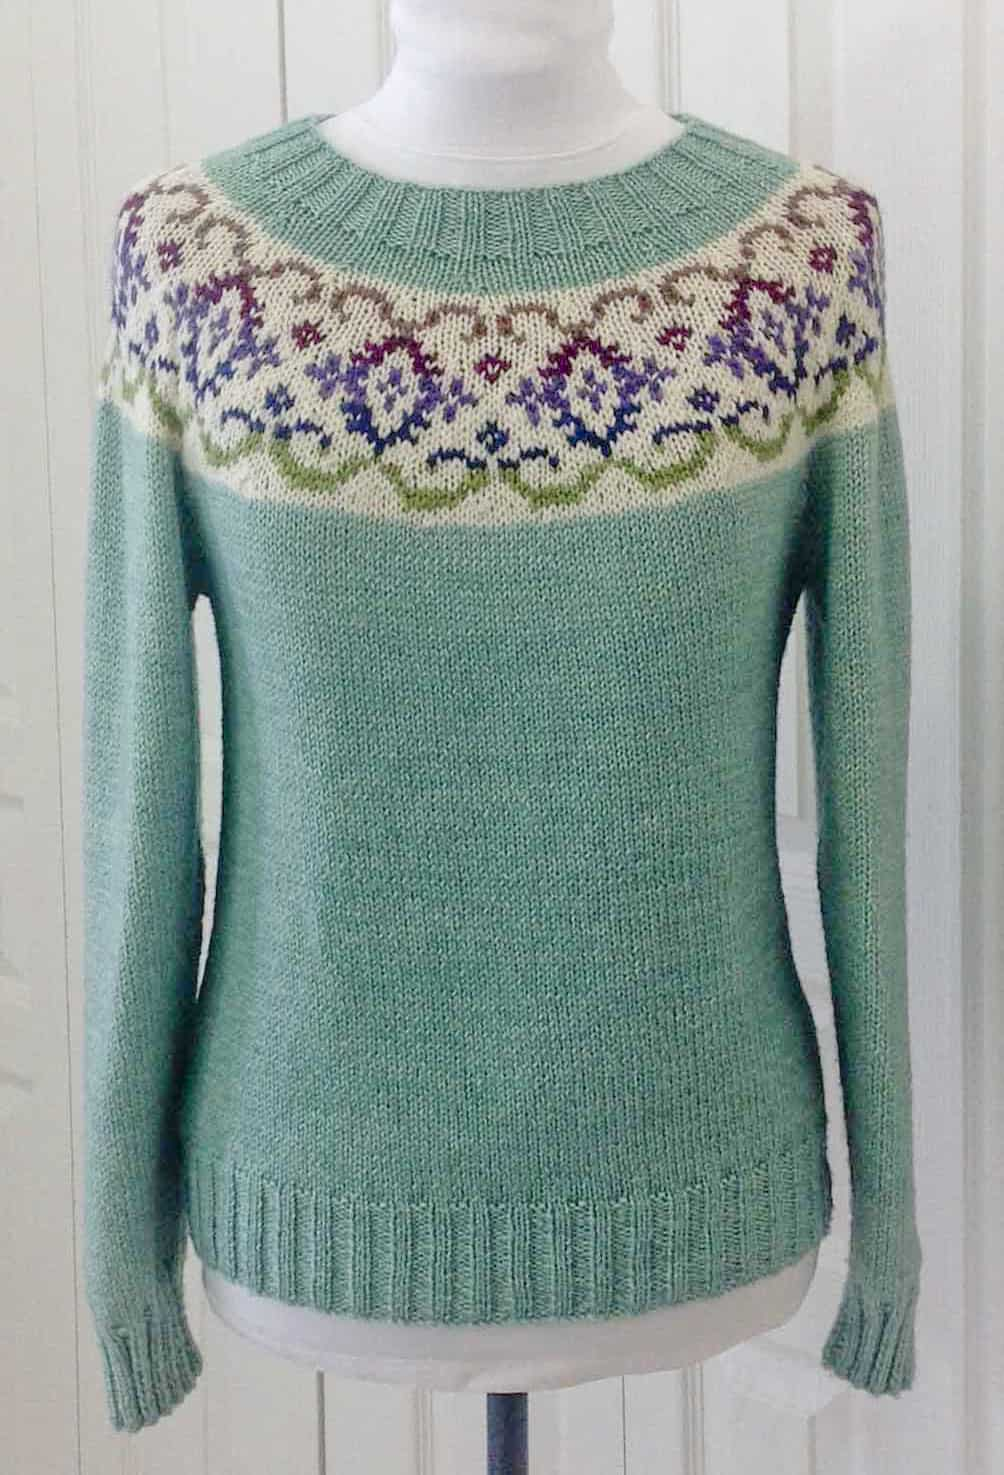 Fair isle knitting projects experienced knitters will adore